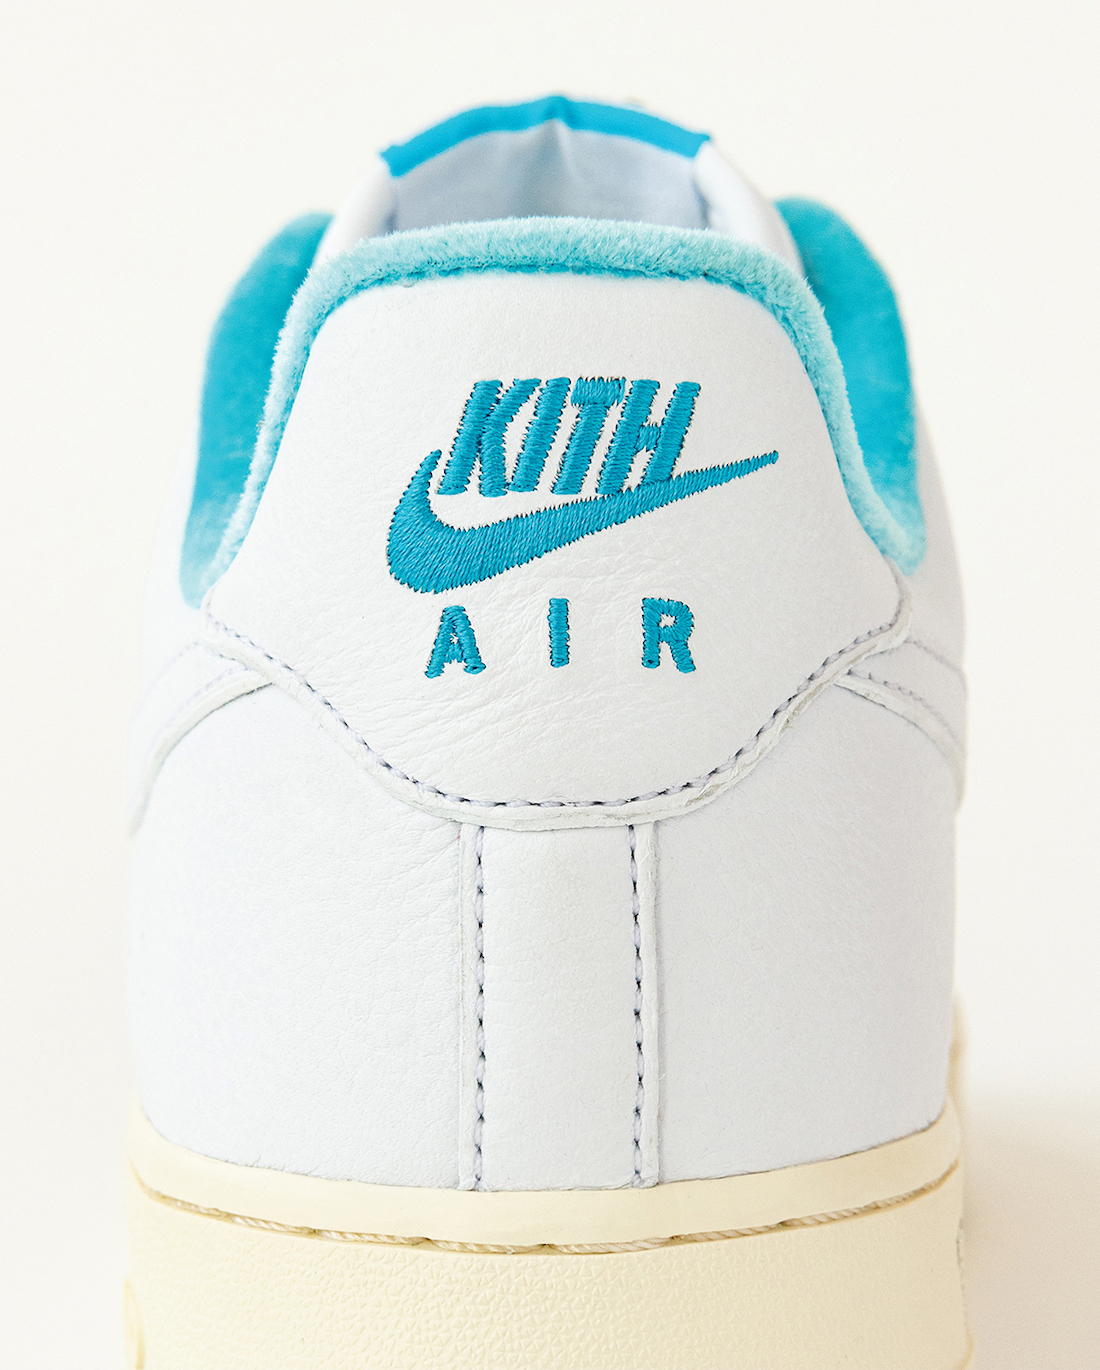 Kith Nike Air Force 1 Low Hawaii DC9555-100 Release Info Price